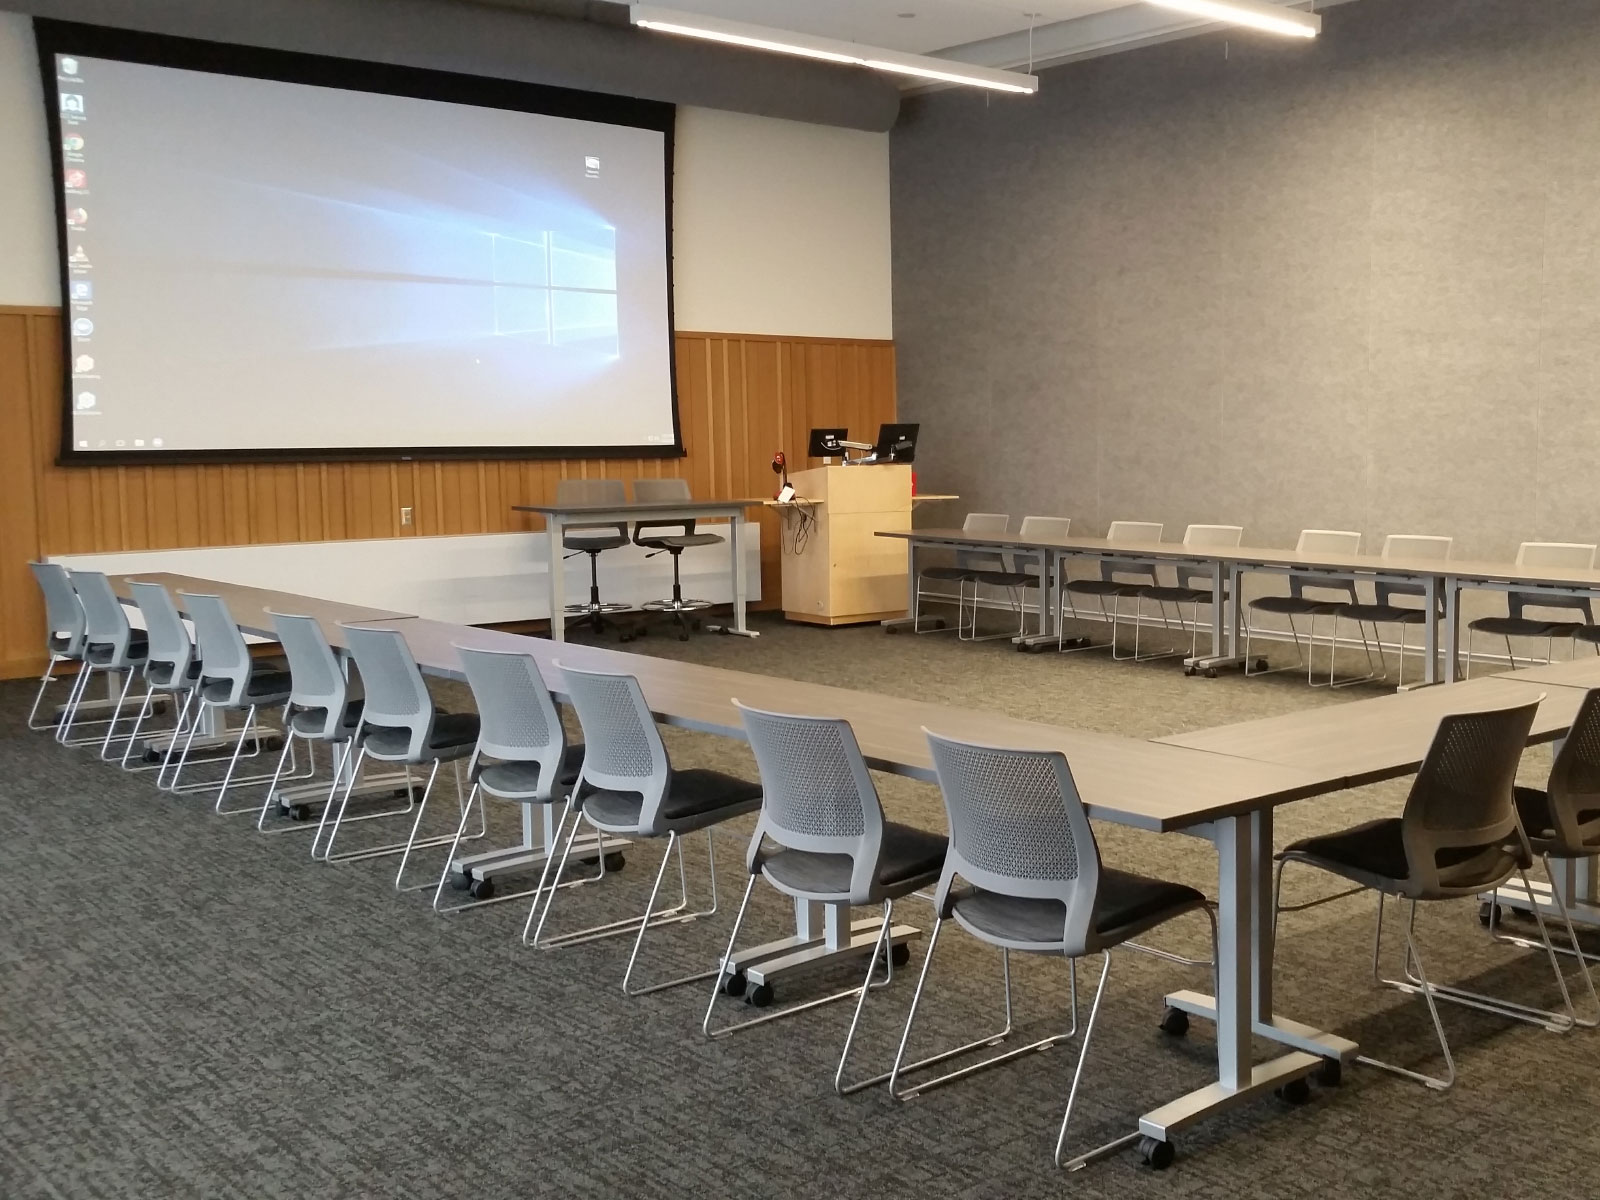 Square-shaped rows of chairs and tables in Harmony Campus community room